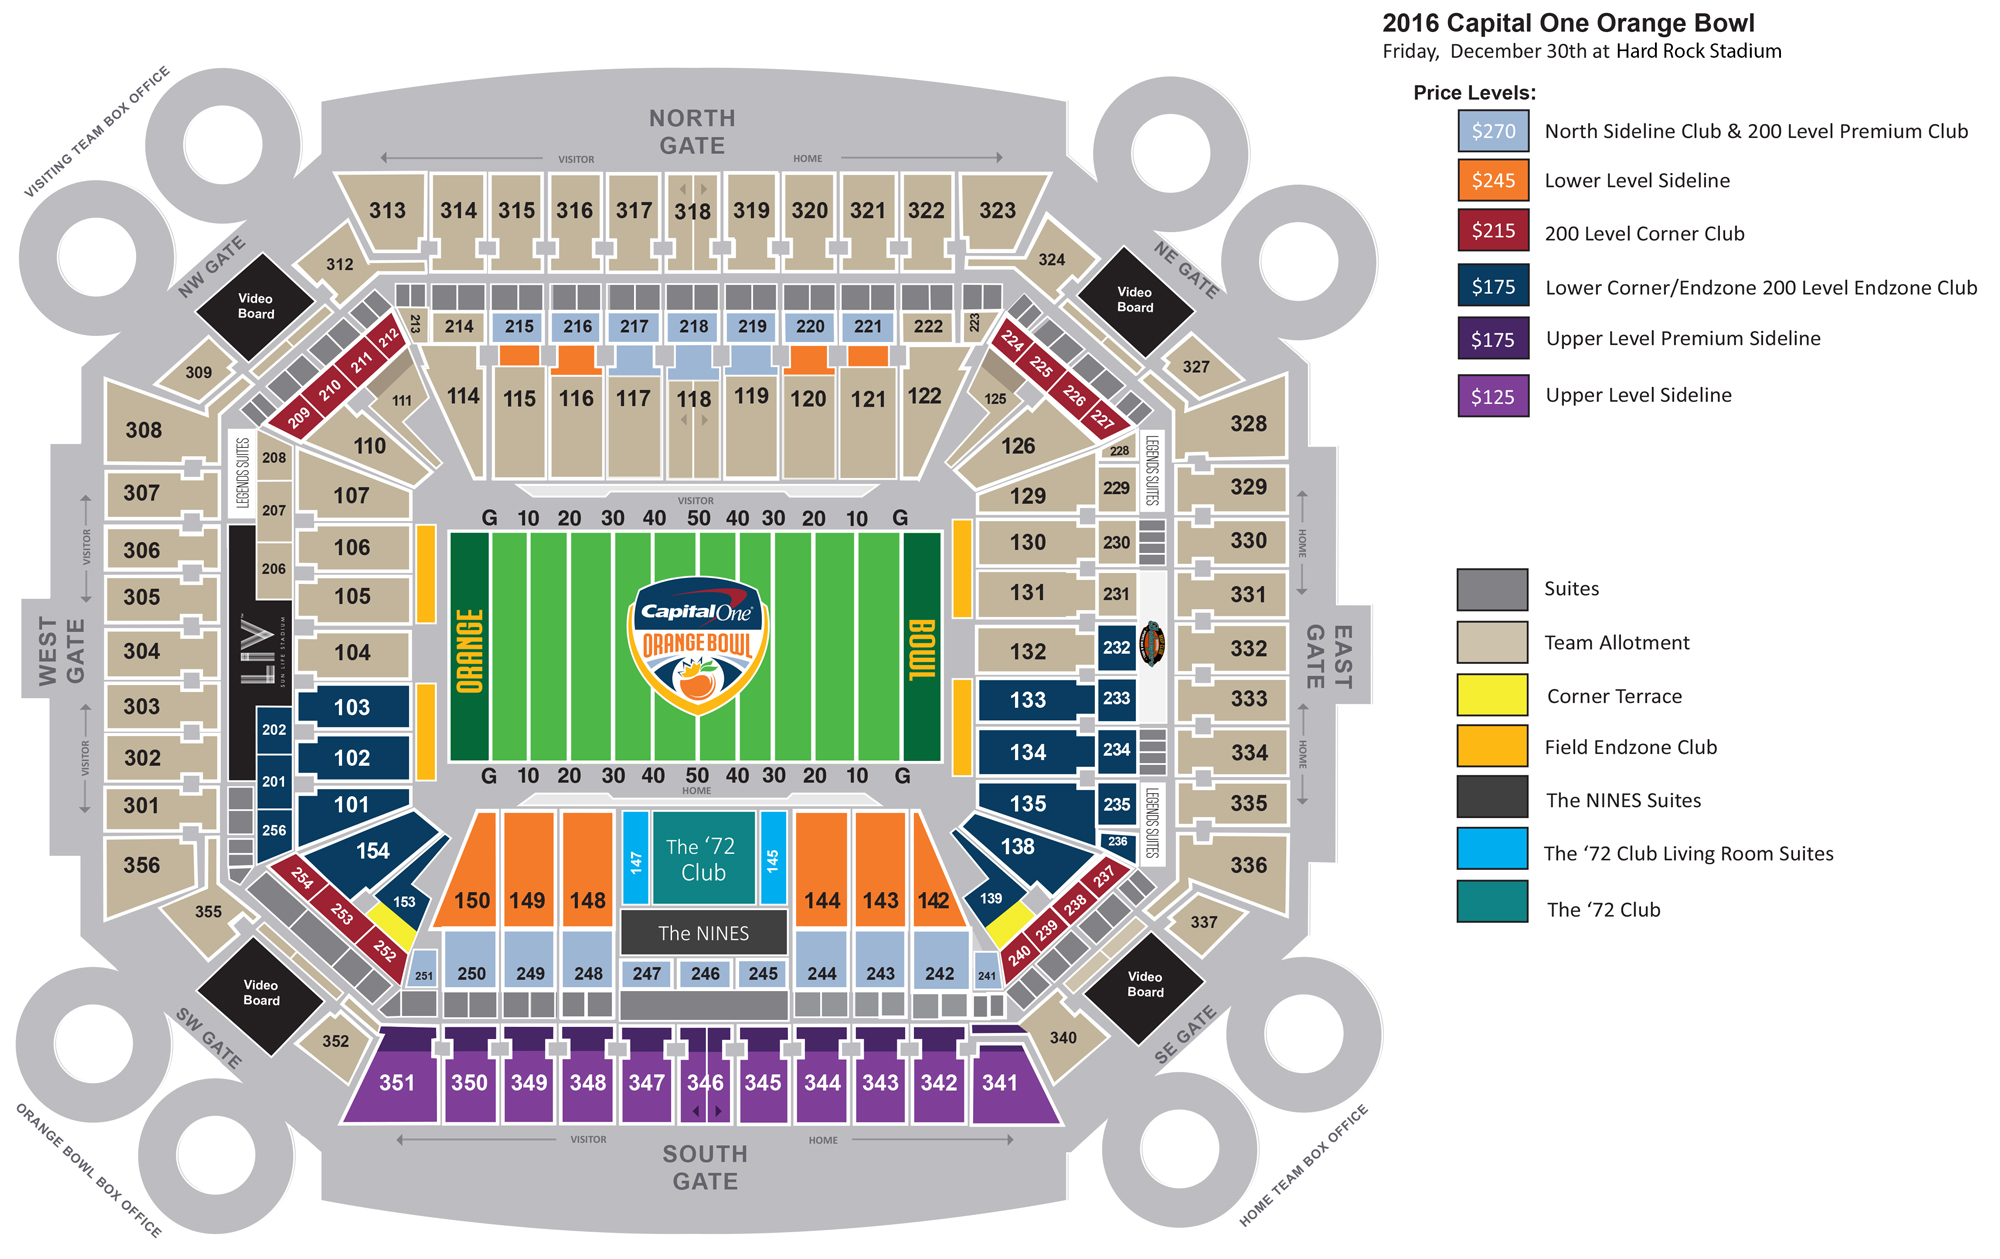 seating chart & pricing - gameday central | orange bowl